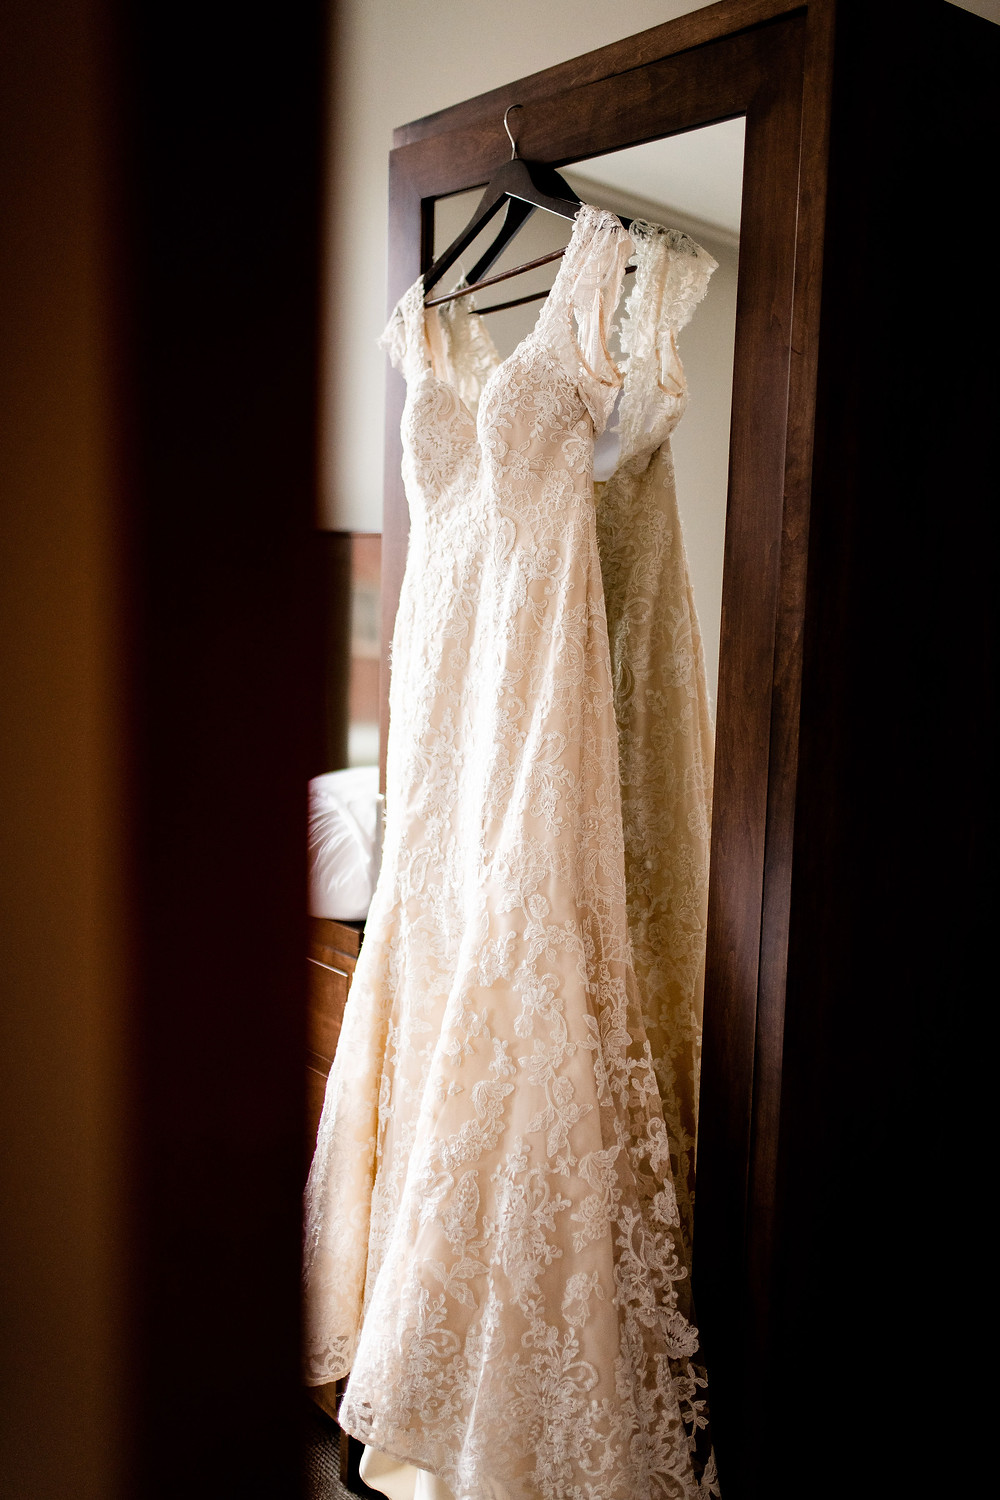 blush and lace wedding dress hanging at a hotel near Cleveland Ohio